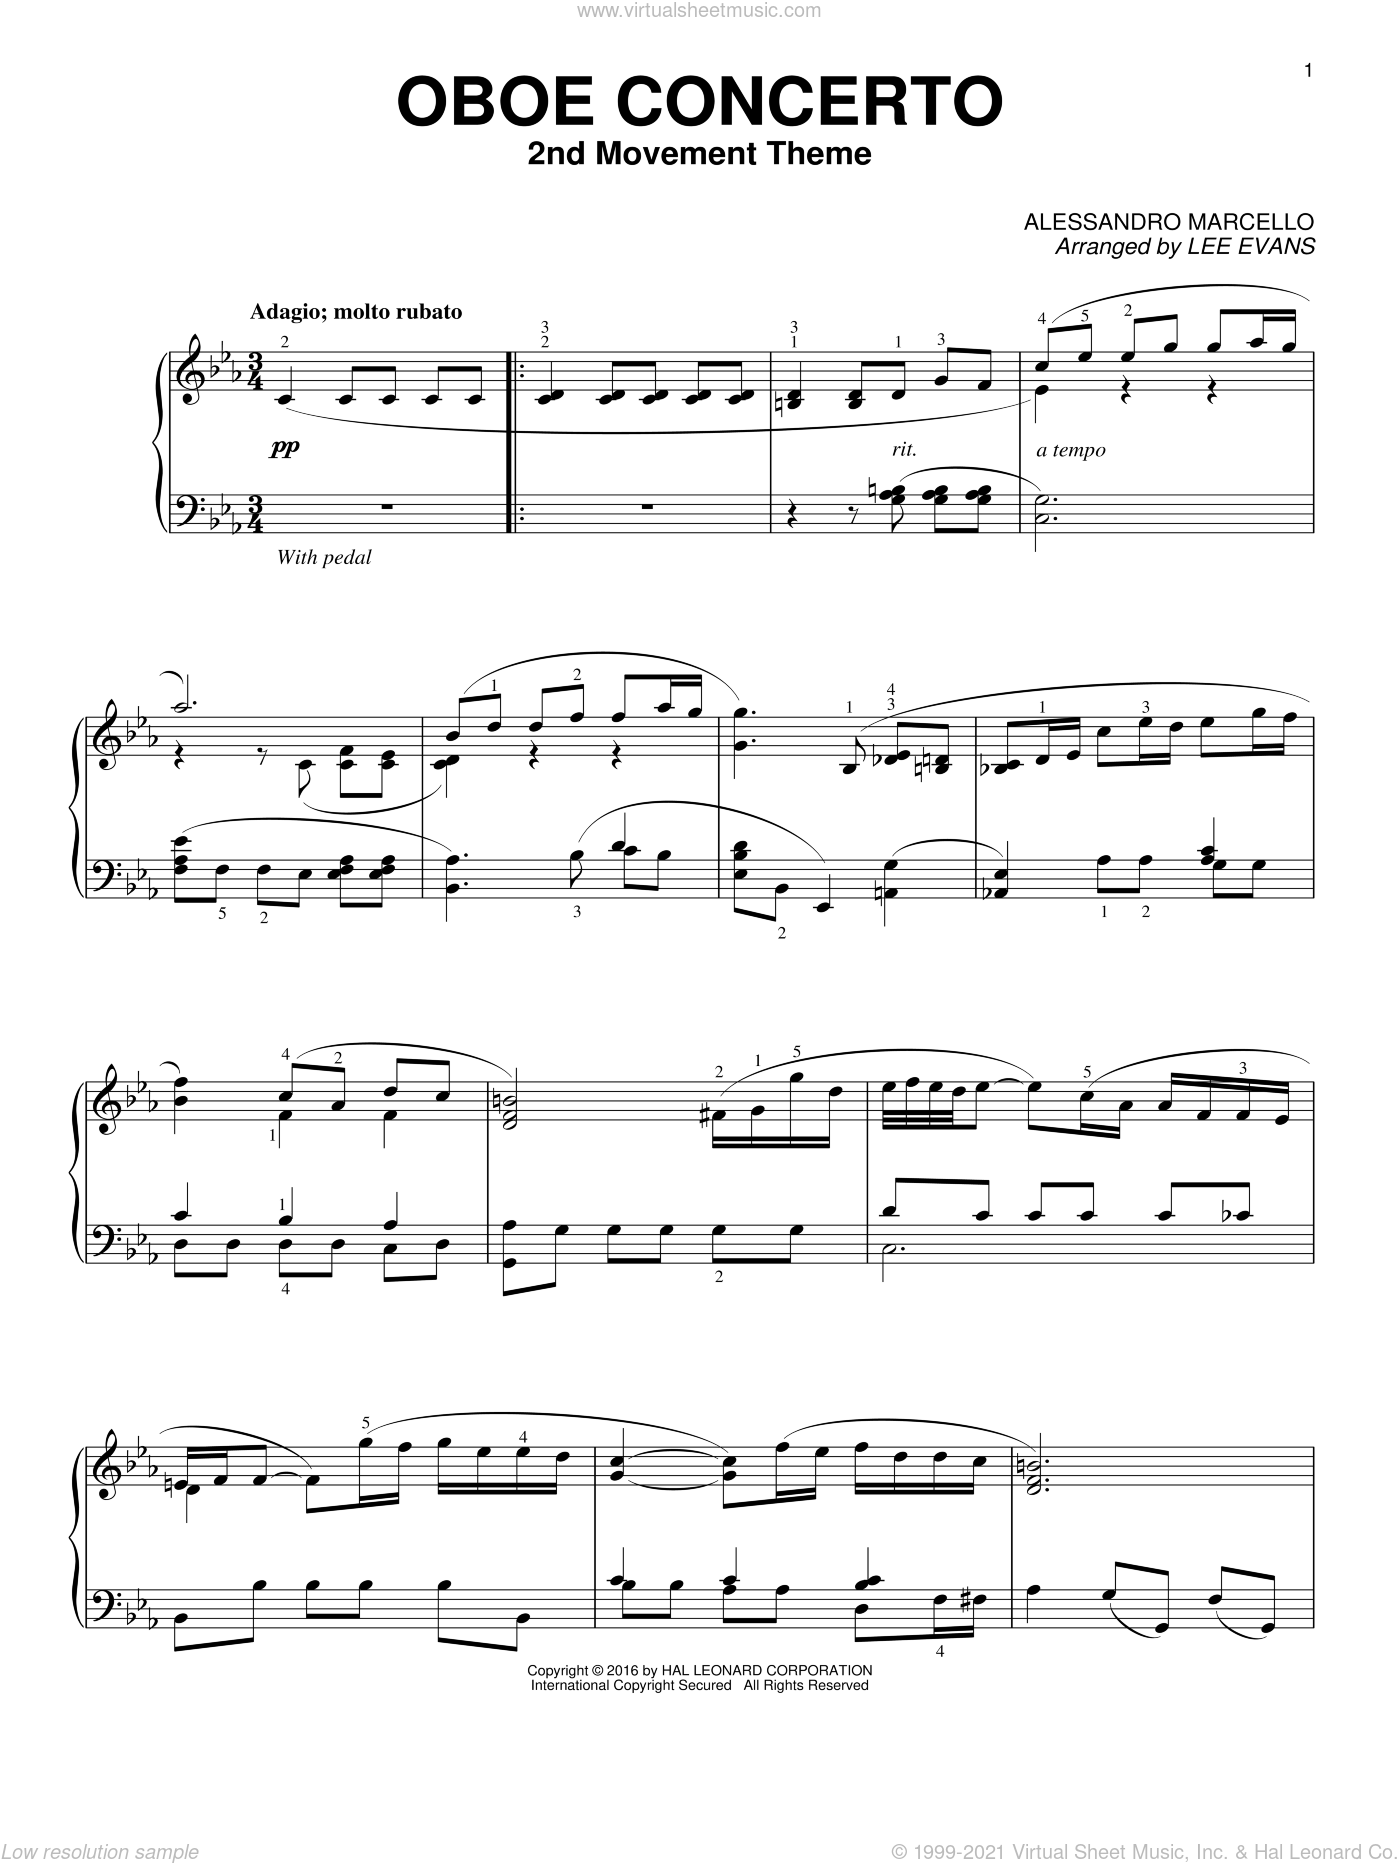 Oboe Concerto In C Minor, 2nd Movement sheet music for piano solo by Alessandro Marcello and Lee Evans, classical score, intermediate